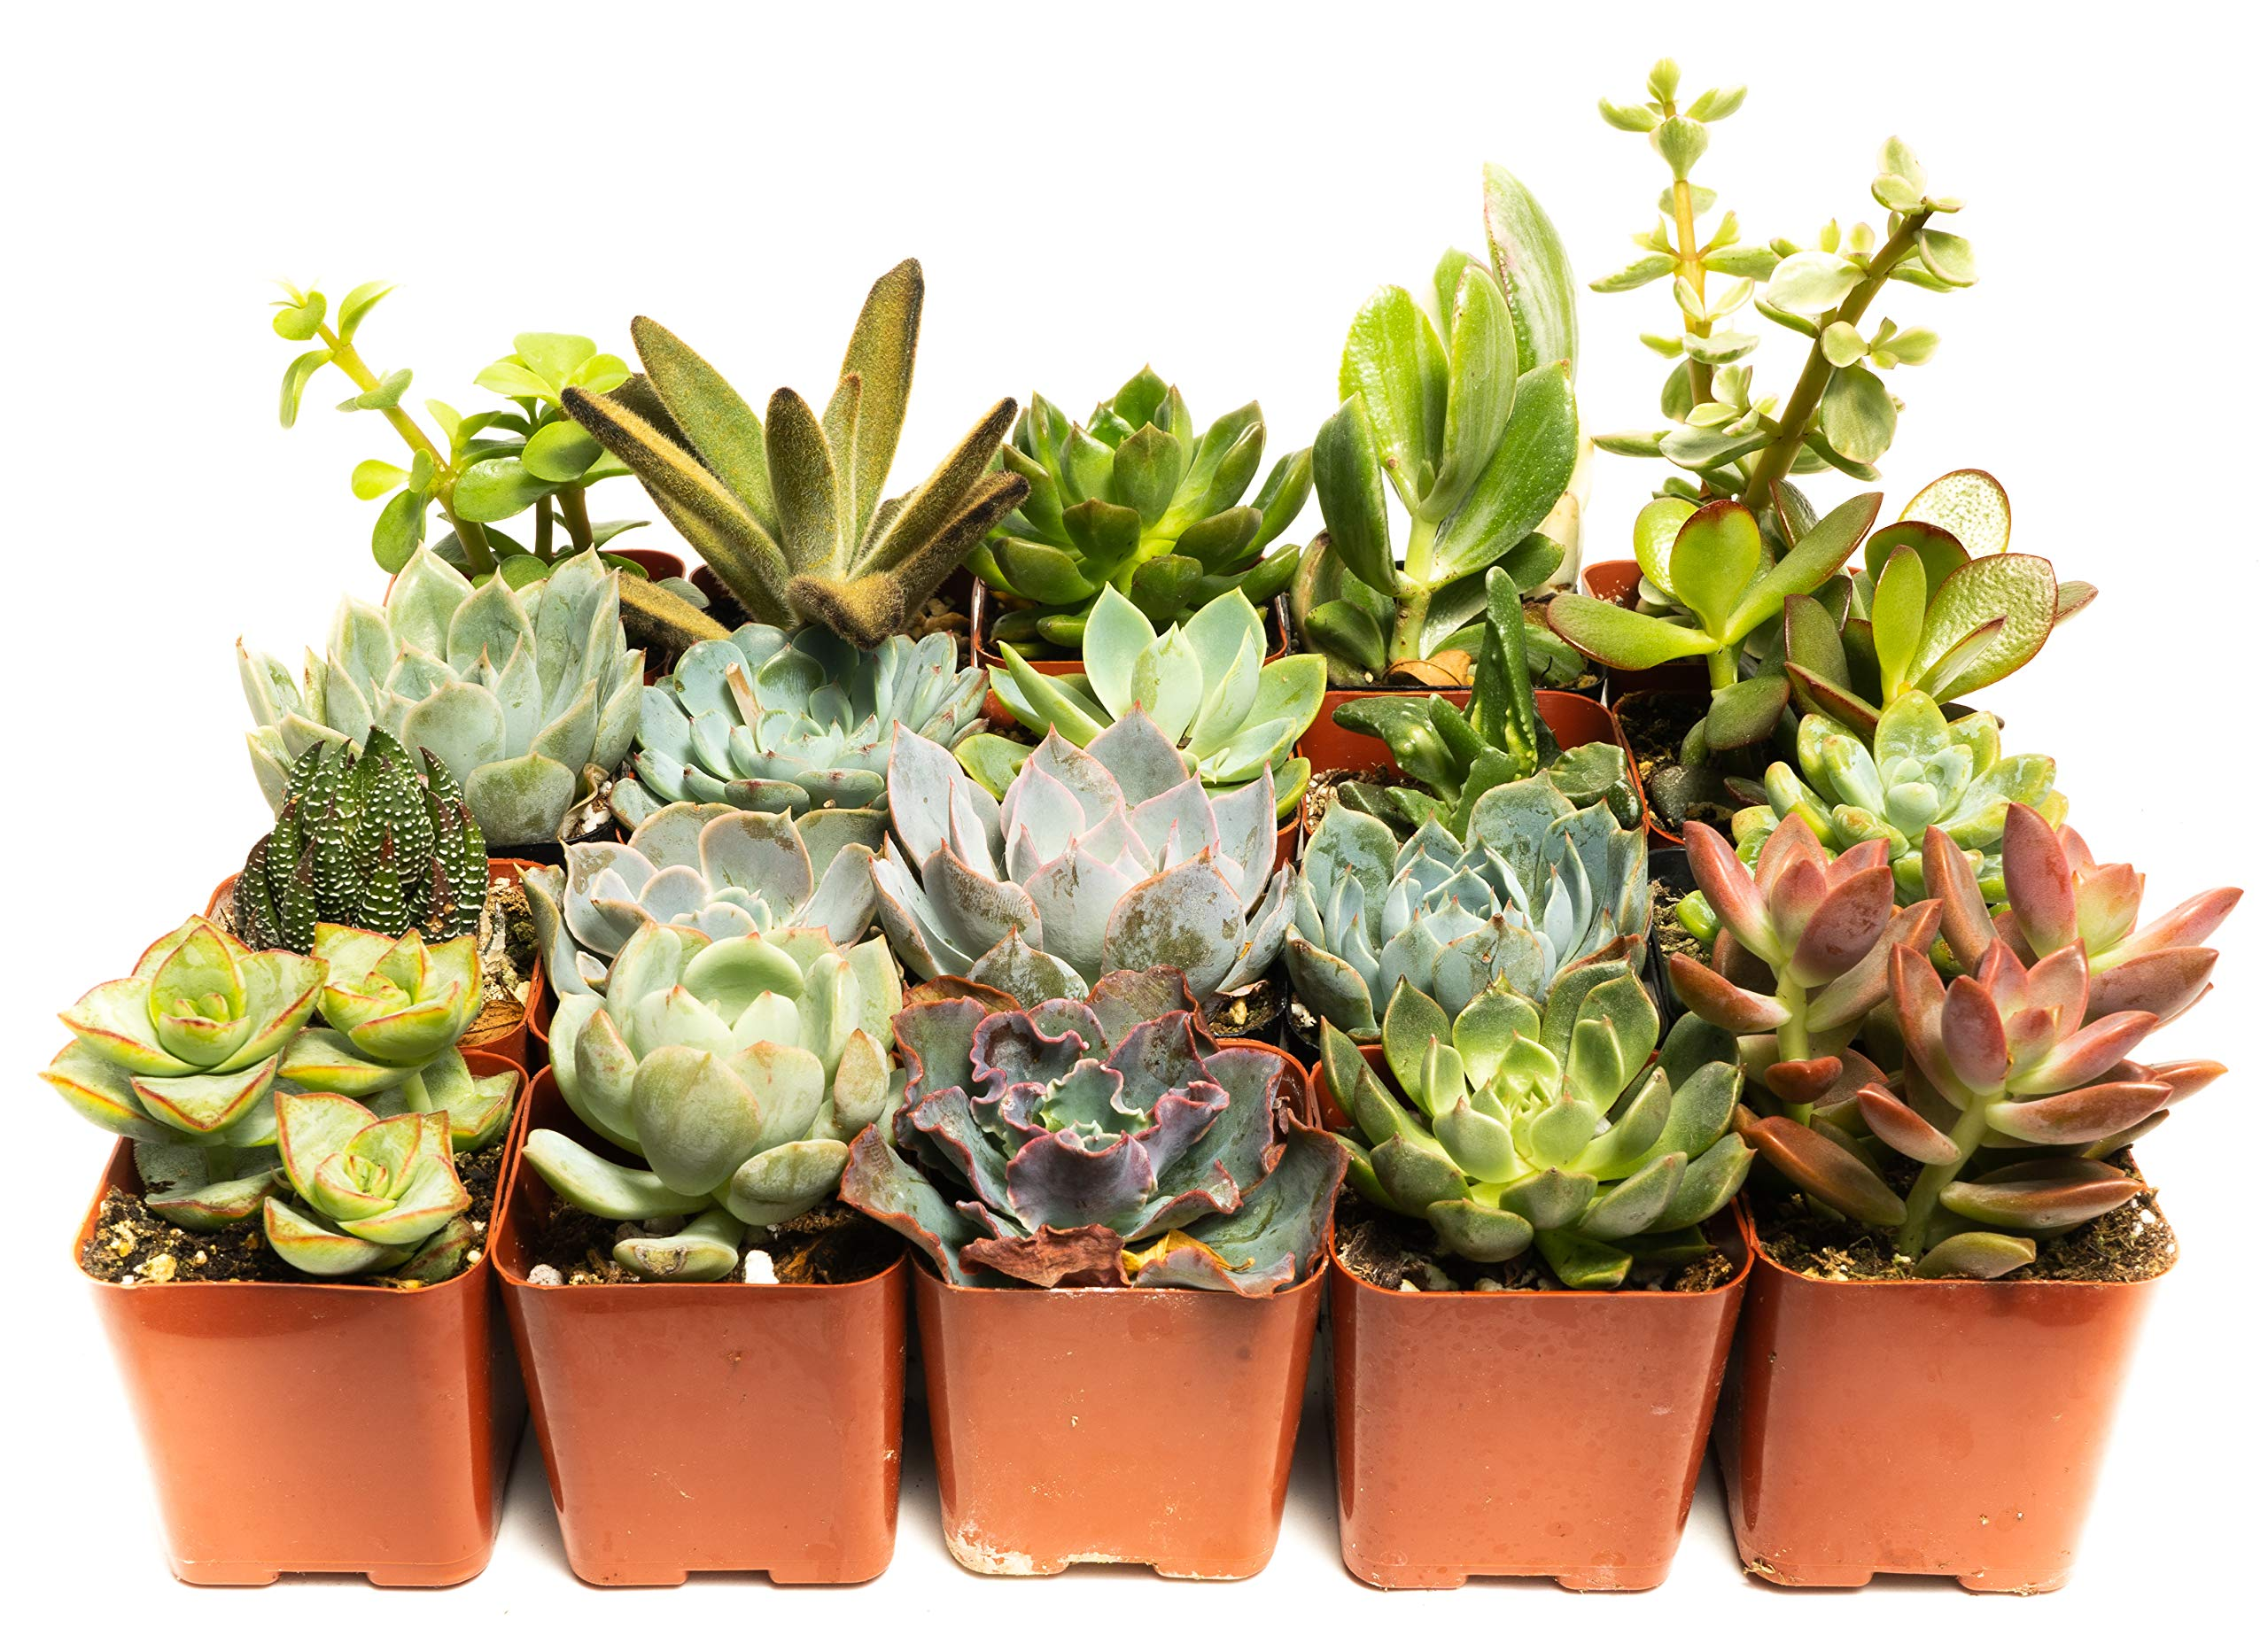 Succulent Assorted Pack- Perfect for Weddings, Party Favors, Home Gardens, and Social Events by Jiimz (20 Pack)